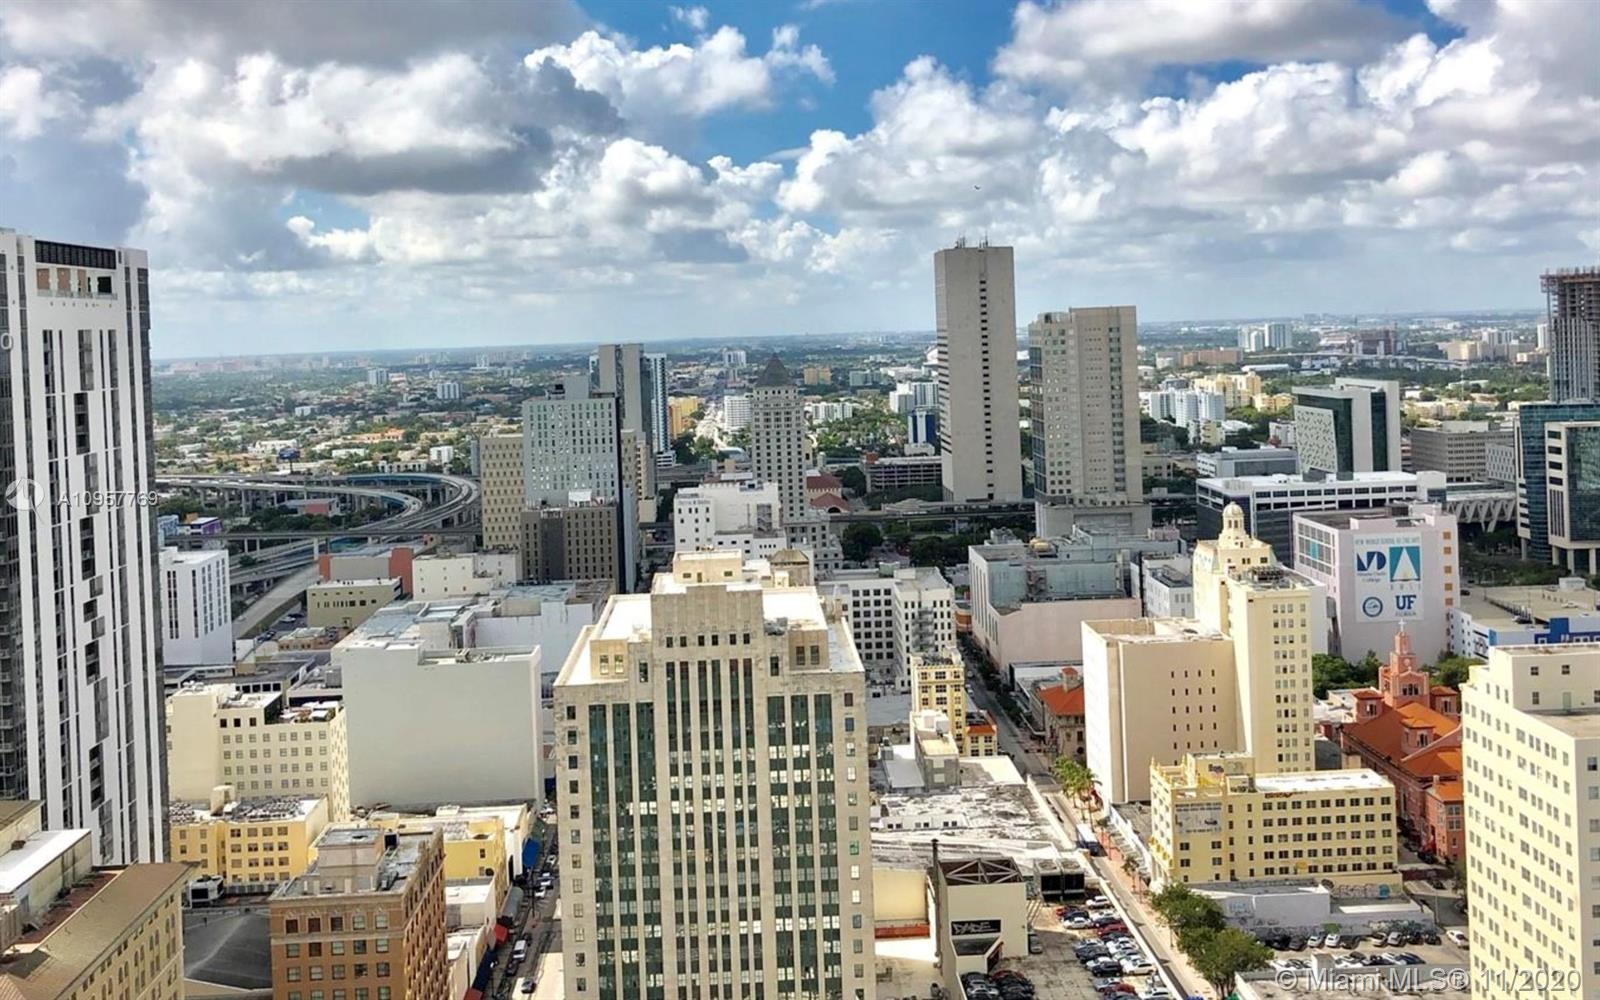 SKY VIEW!! GREAT STUDIO, WITH WHITE WOOD FLOOR . AMAZING DOWNTOWN LOCATION IN THE HEART OF BUSINESS DISTRICT - WALKING DISTANCE TO OFFICES, AA ARENA, SHOPPING, DINING AND BAYFRONT PARK. FULL AMENITIES INCLUDE LUXURY POOL DECK, STATE OF THE ART GYM, SEPARATE SPA AND VALET PARKING FOR GUESTS. SPECTACULAR VIEW OVERLOOKING THE CITY.